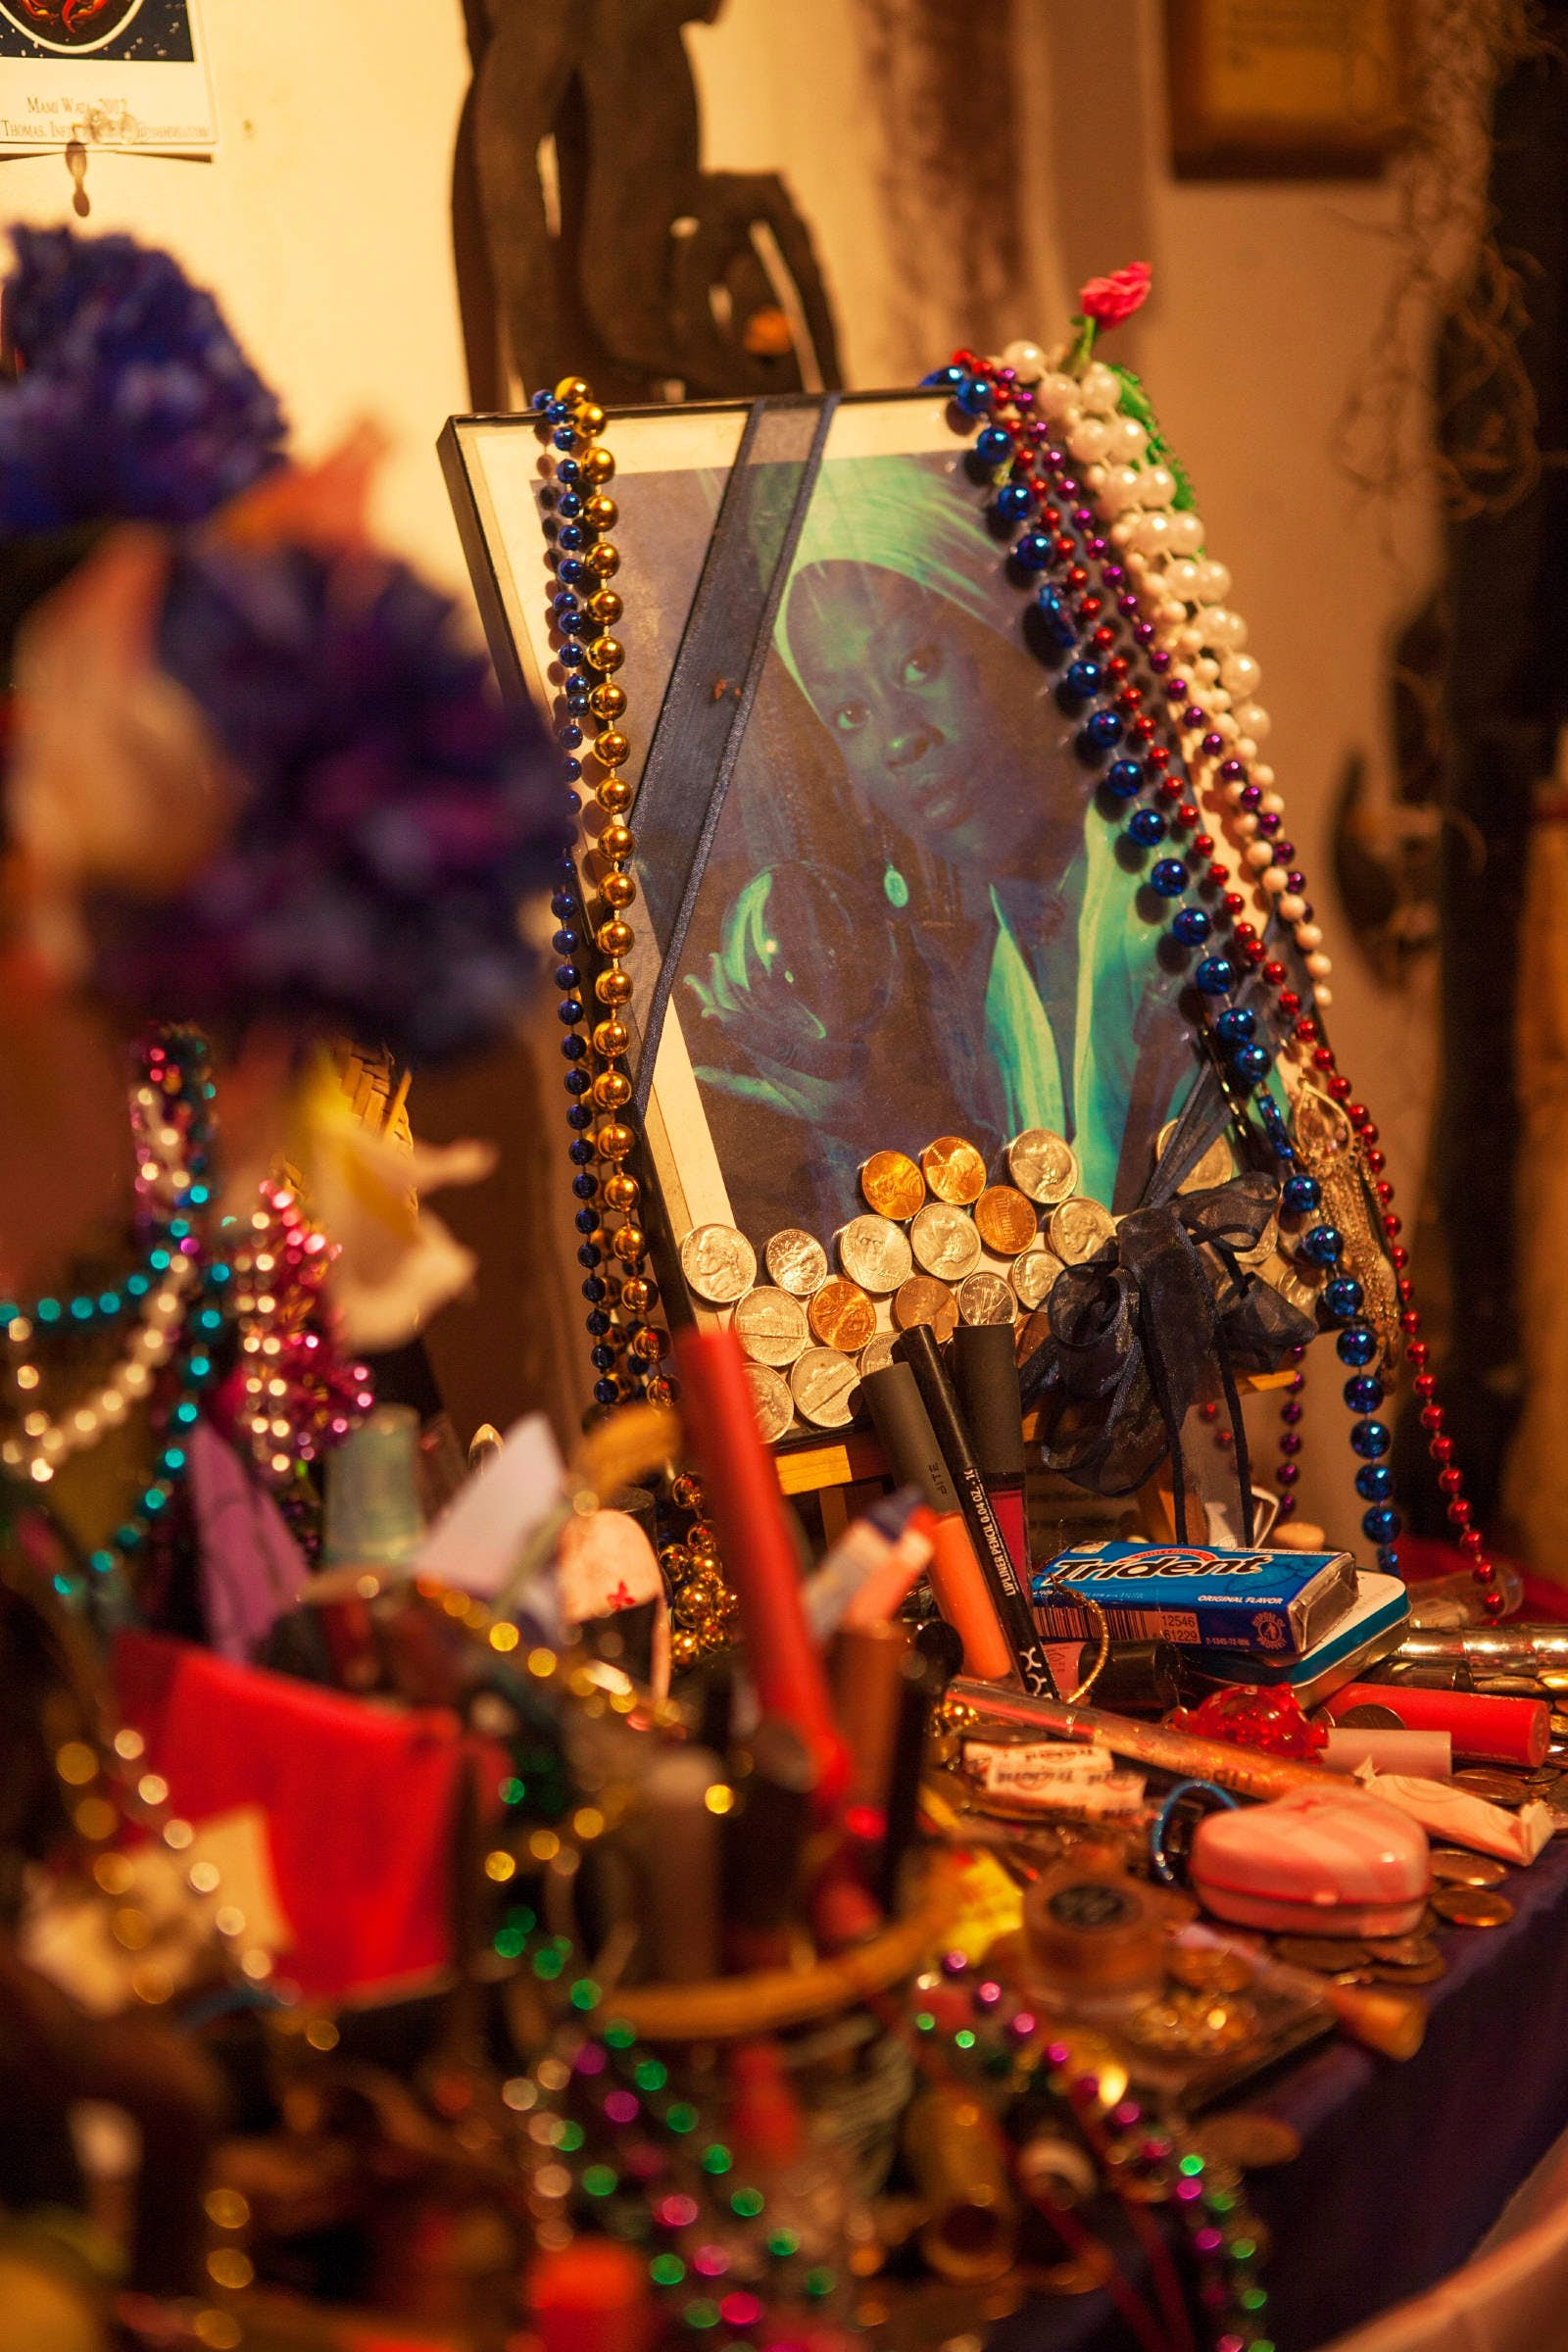 A framed picture stands in the middle of an altar with a photo of a woman with long fingernails in a white turban, clothes and earrings holding a crystal ball. Strings of beads surround it, along with coins, gum packets, pens and a heart-shaped box.